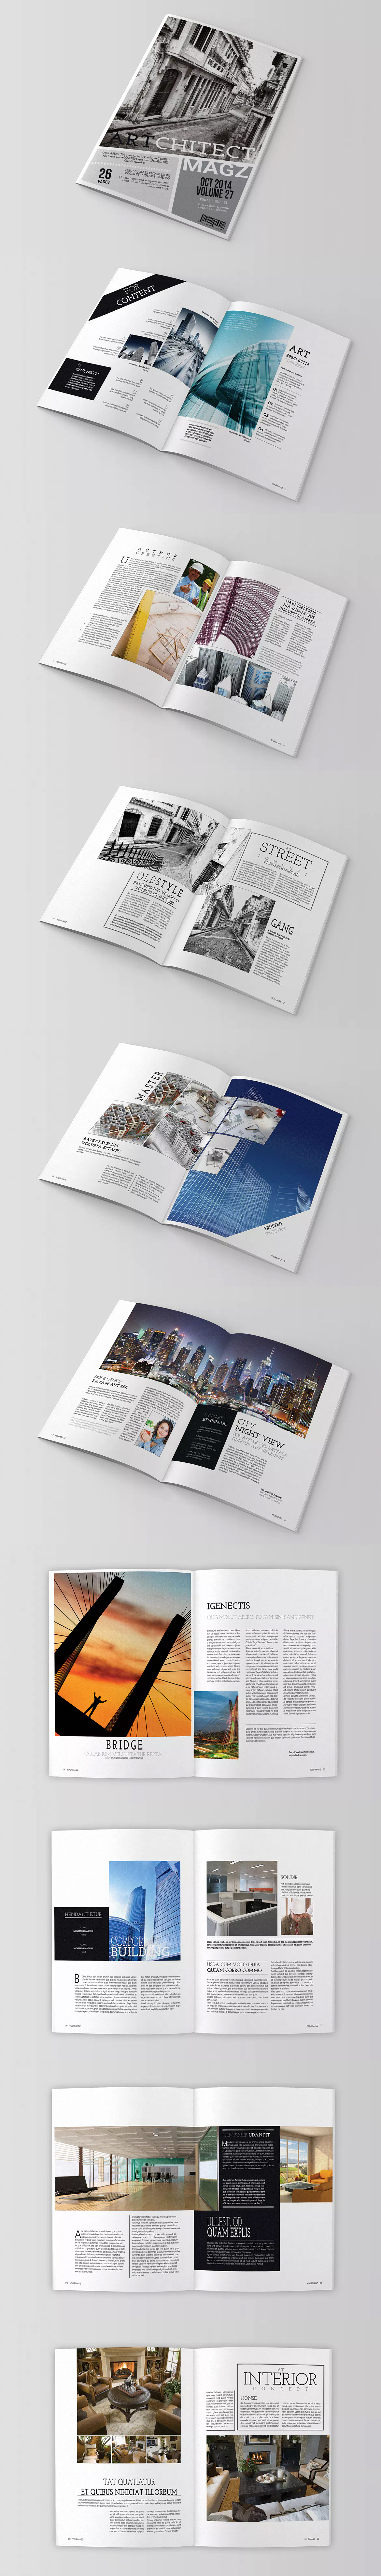 Magazine Template InDesign INDD 26 Pages